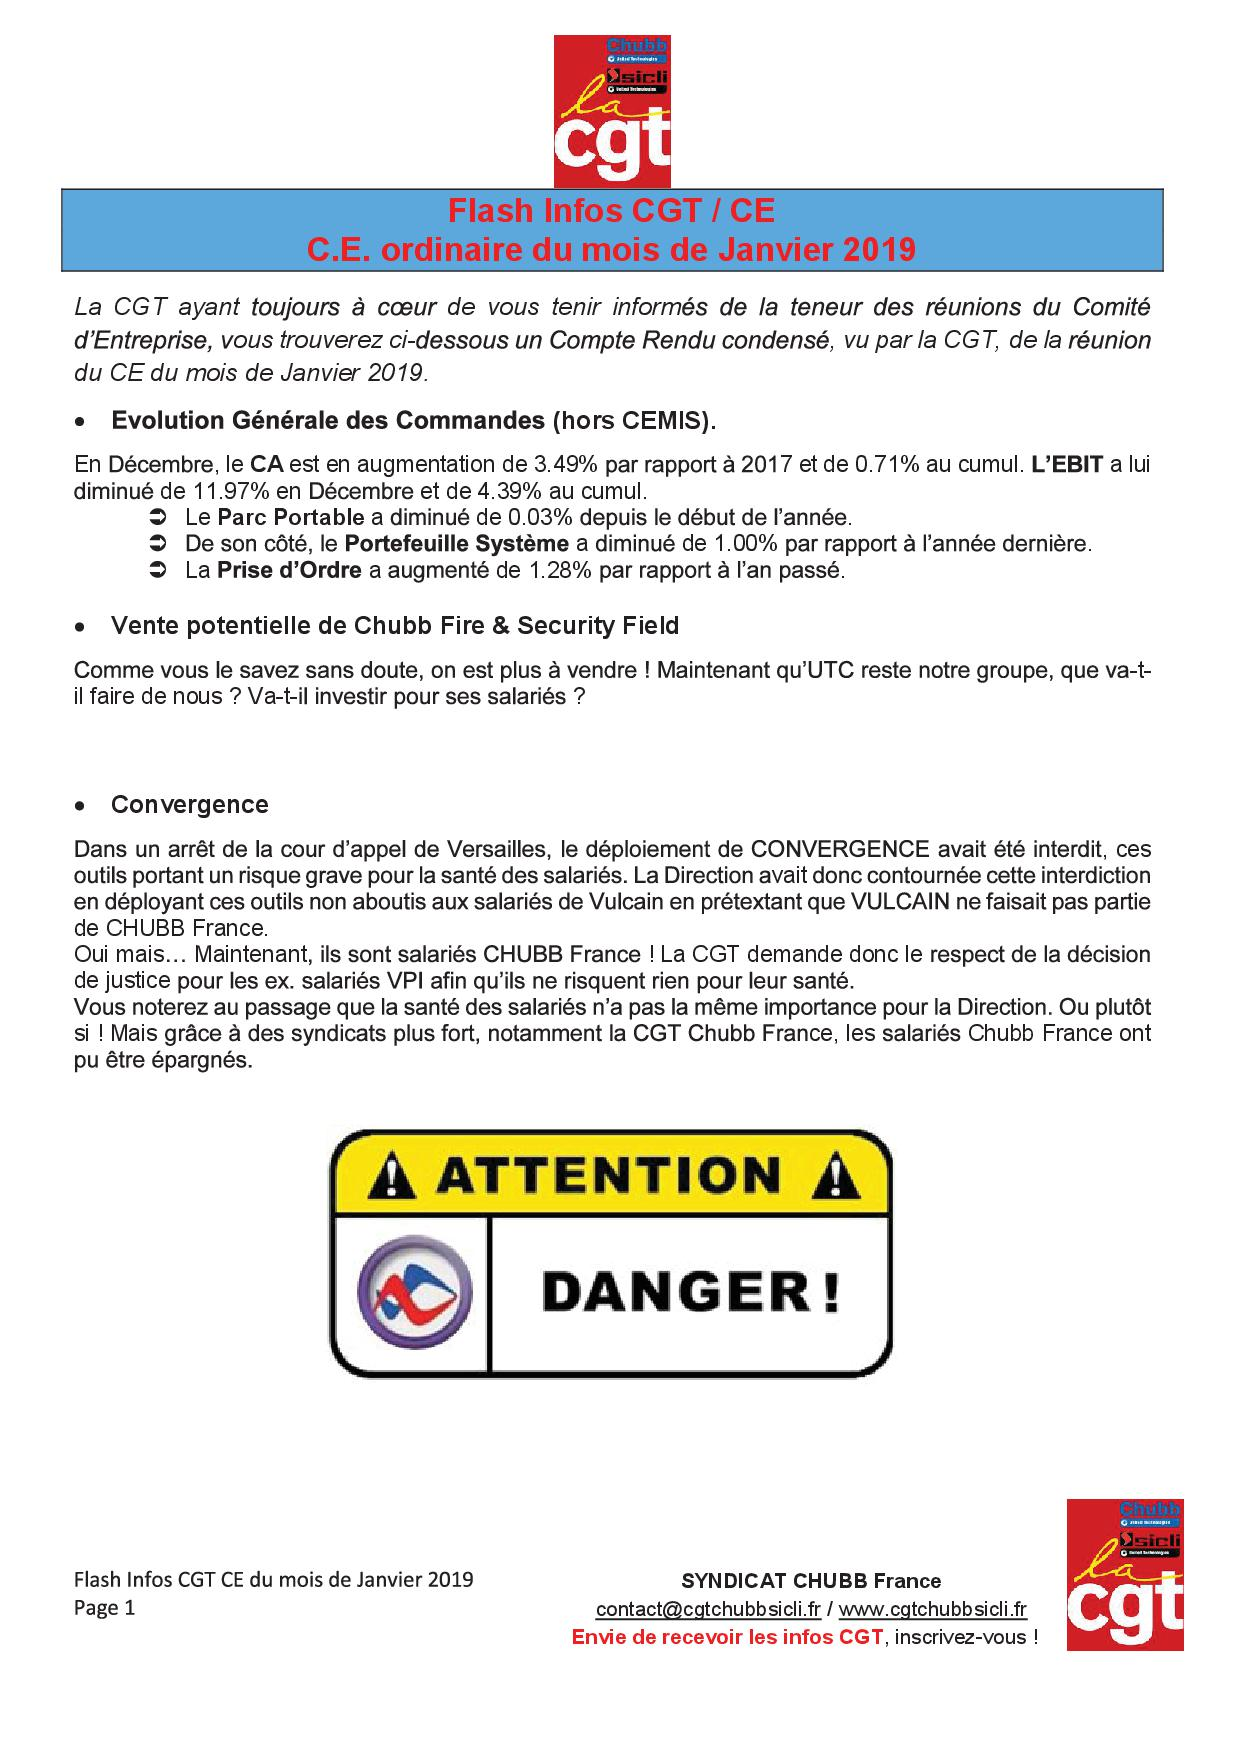 Flash info ce cgt 0120191